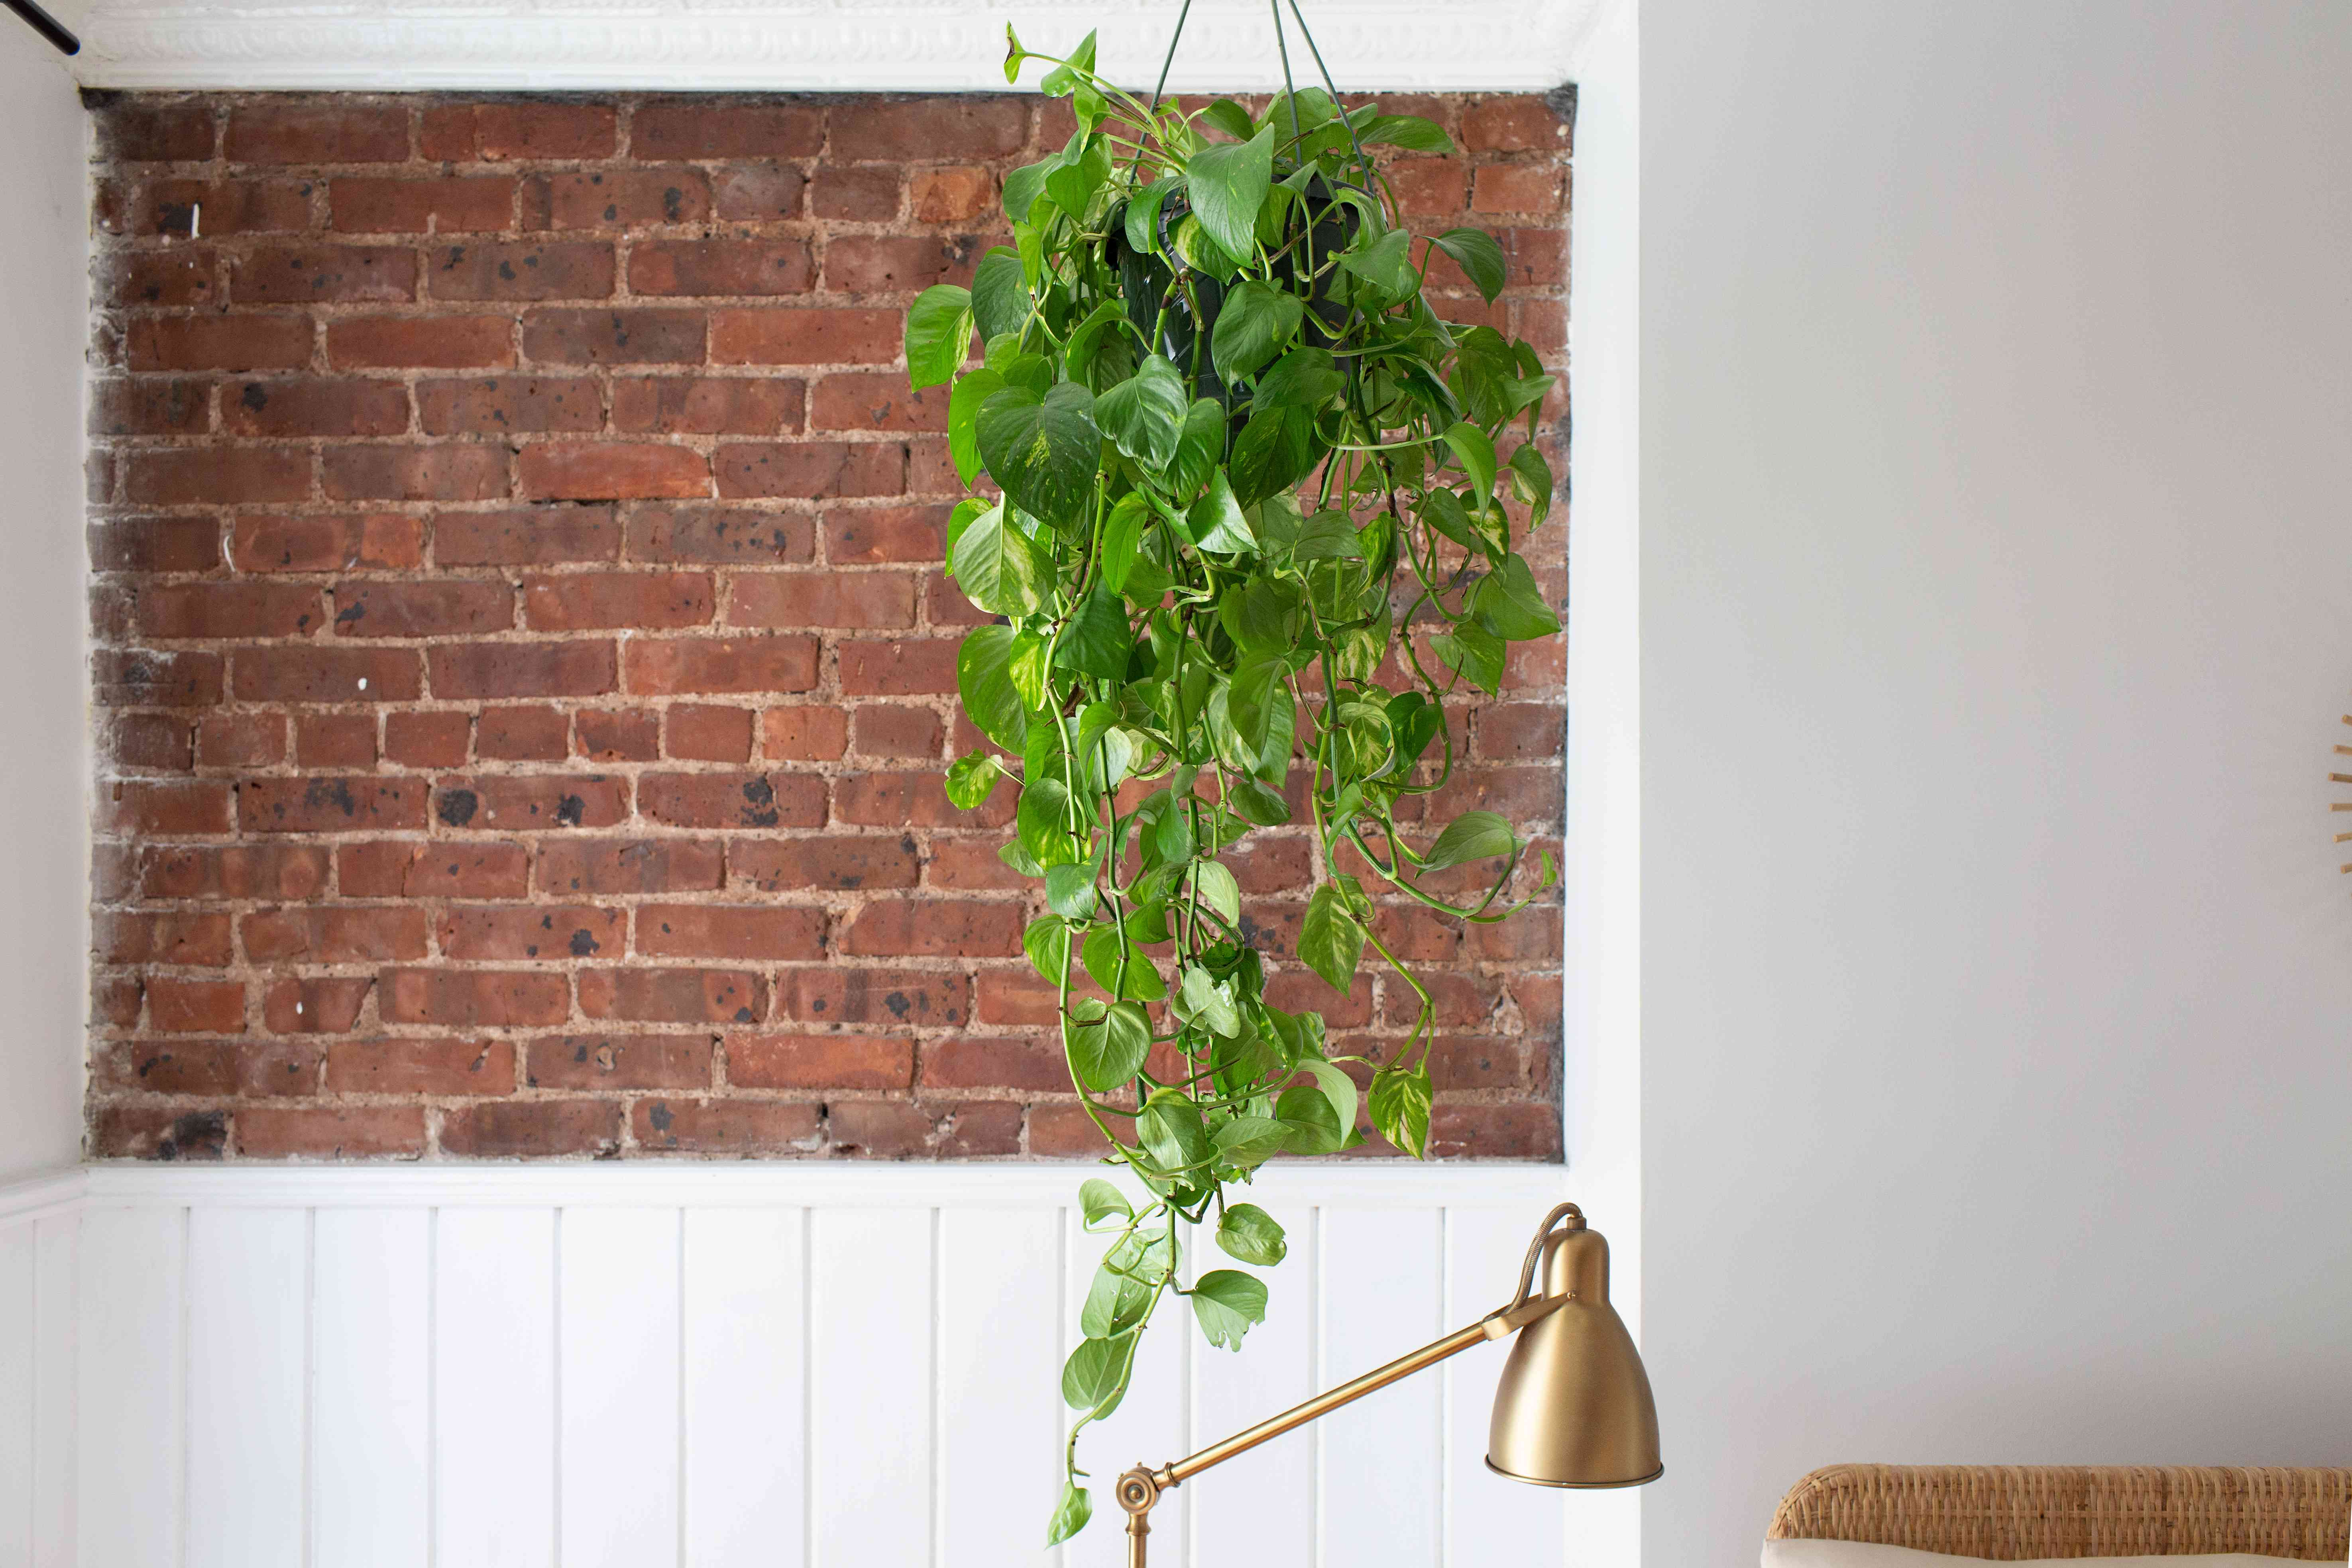 pothos hanging from the ceiling